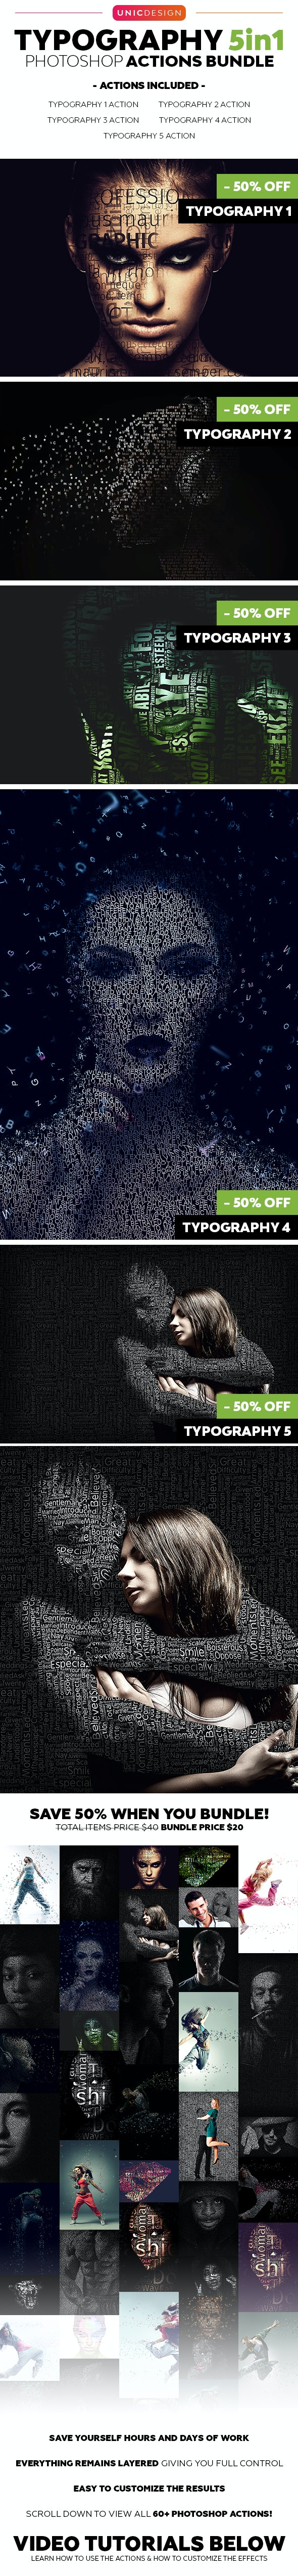 Typography 5in1 Photoshop Actions Bundle - Photo Effects Actions